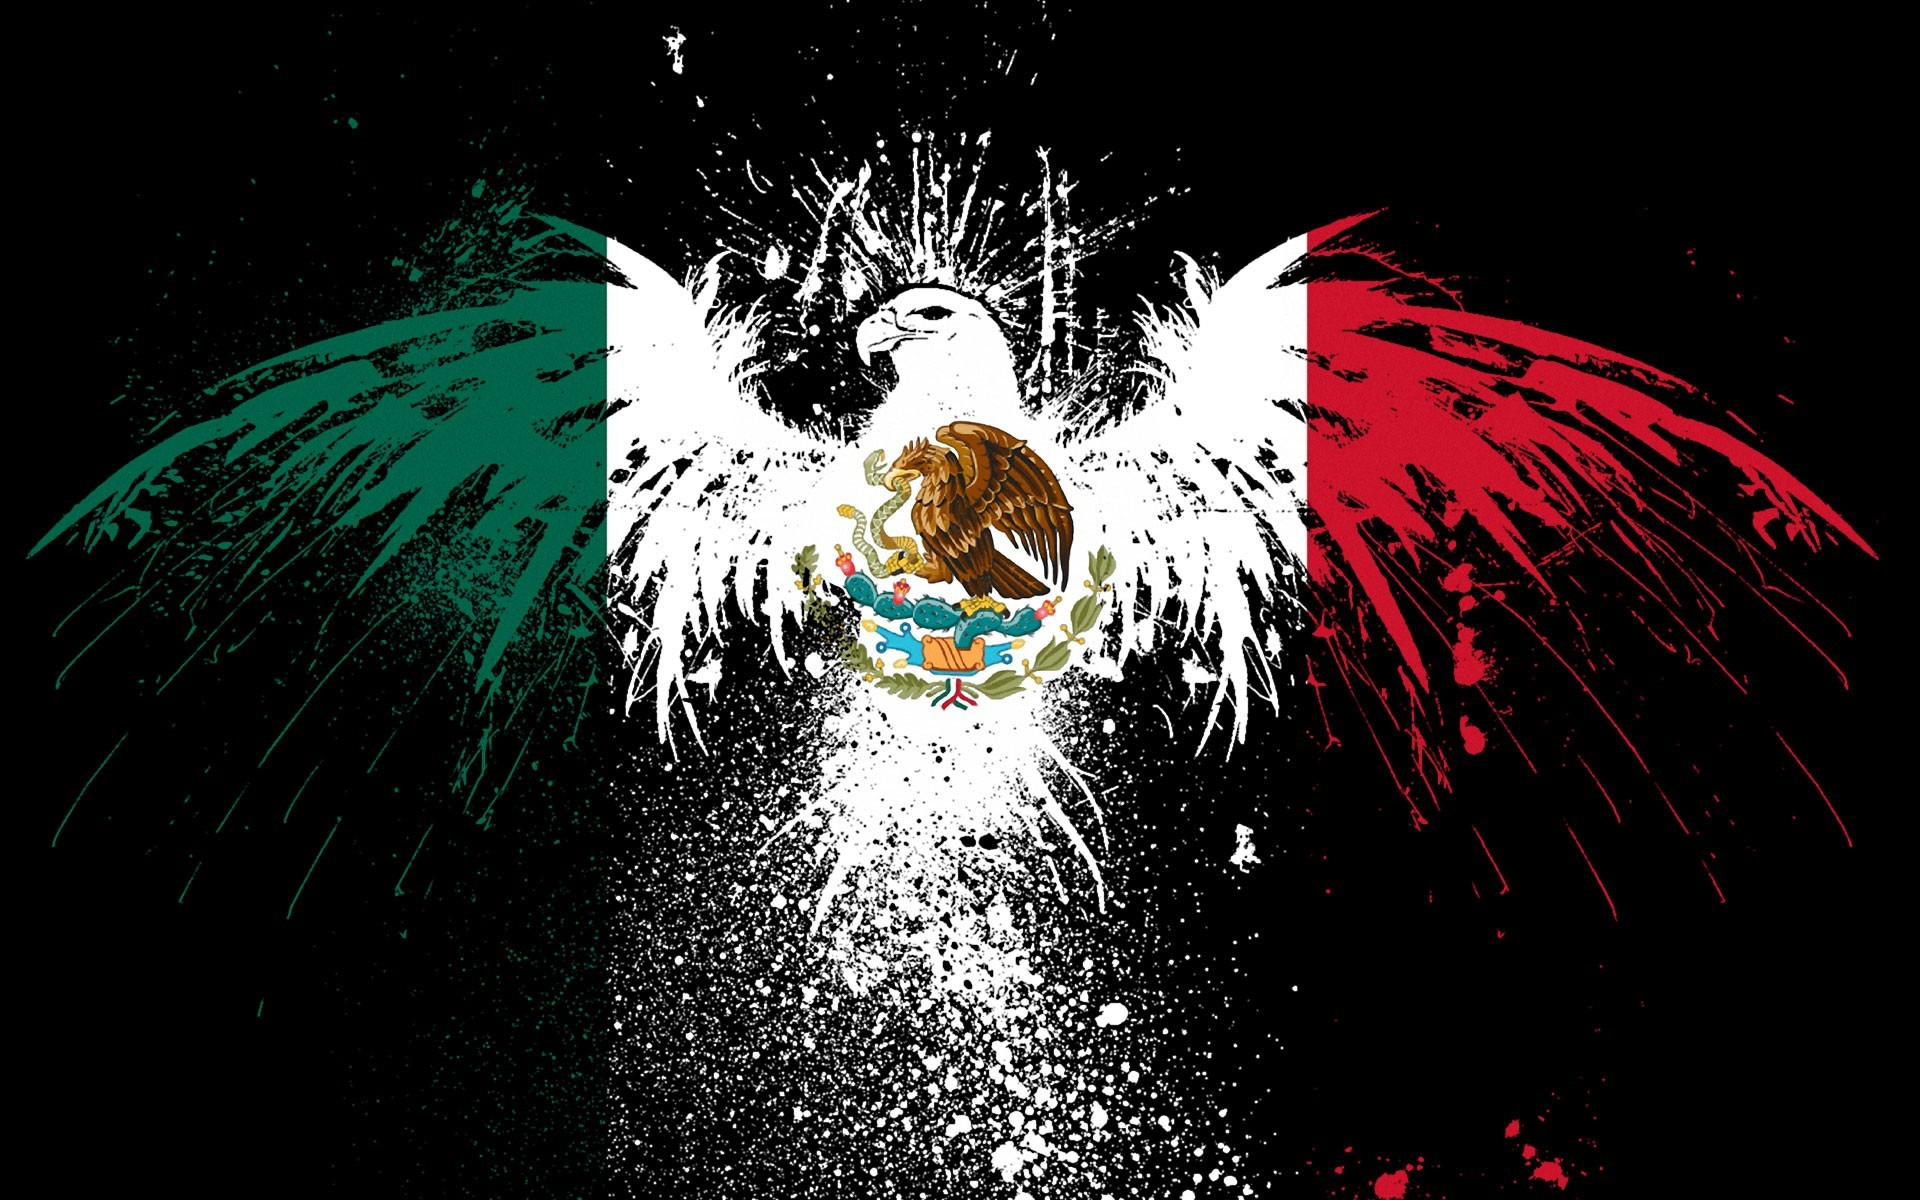 1920x1200 Flag wallpaper - 1315225 Mexico